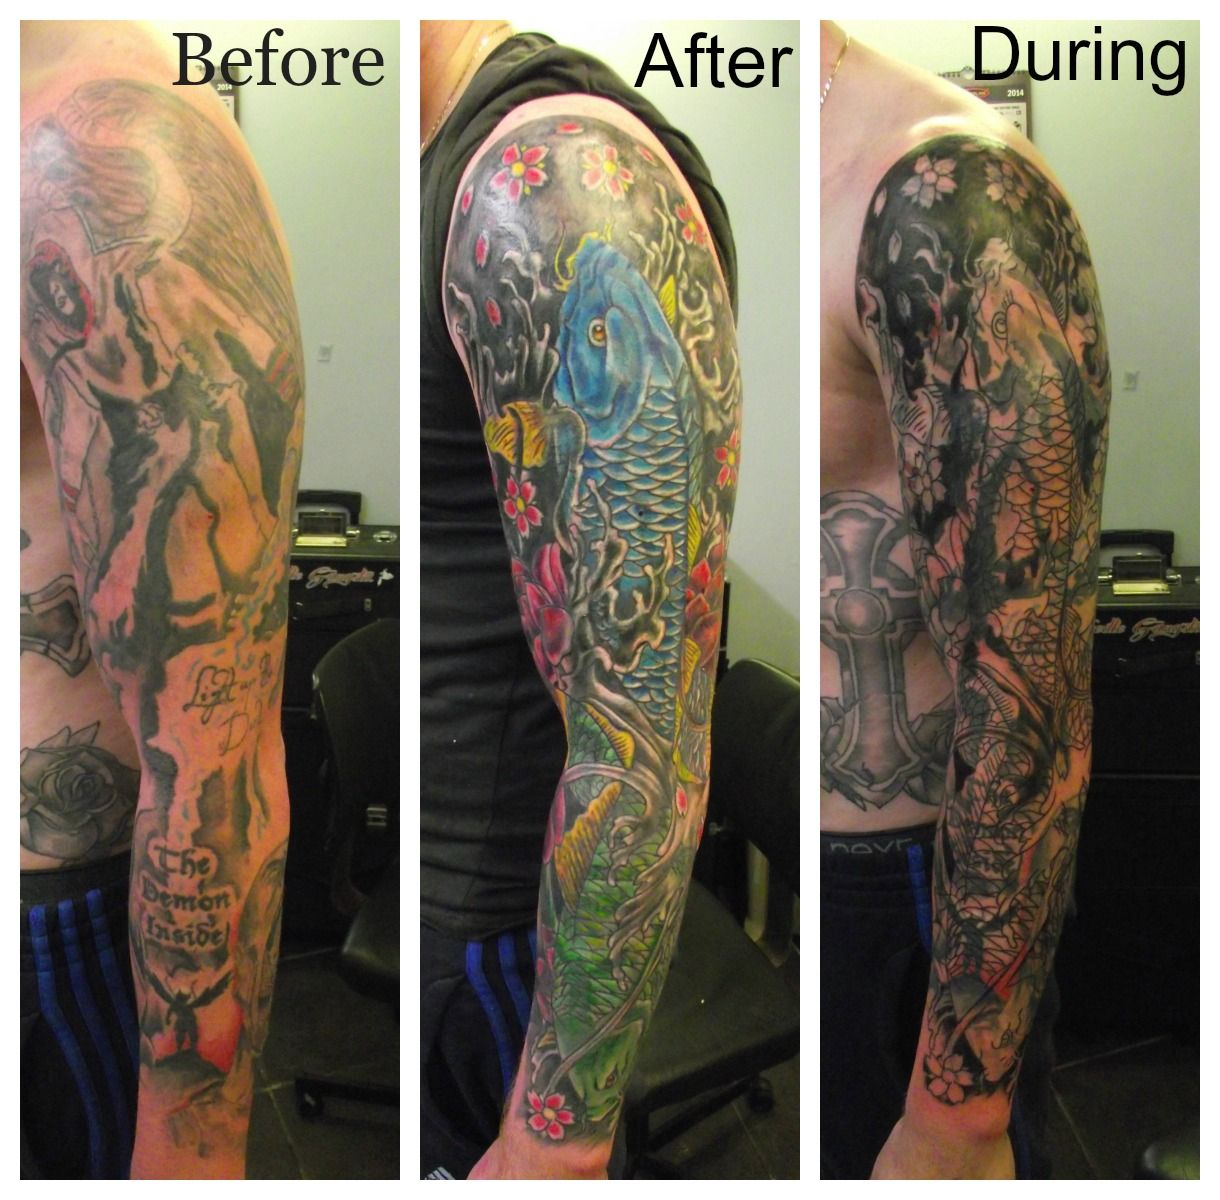 Full Arm Tattoo Cover Up Sleeve • Arm Tattoo Sites